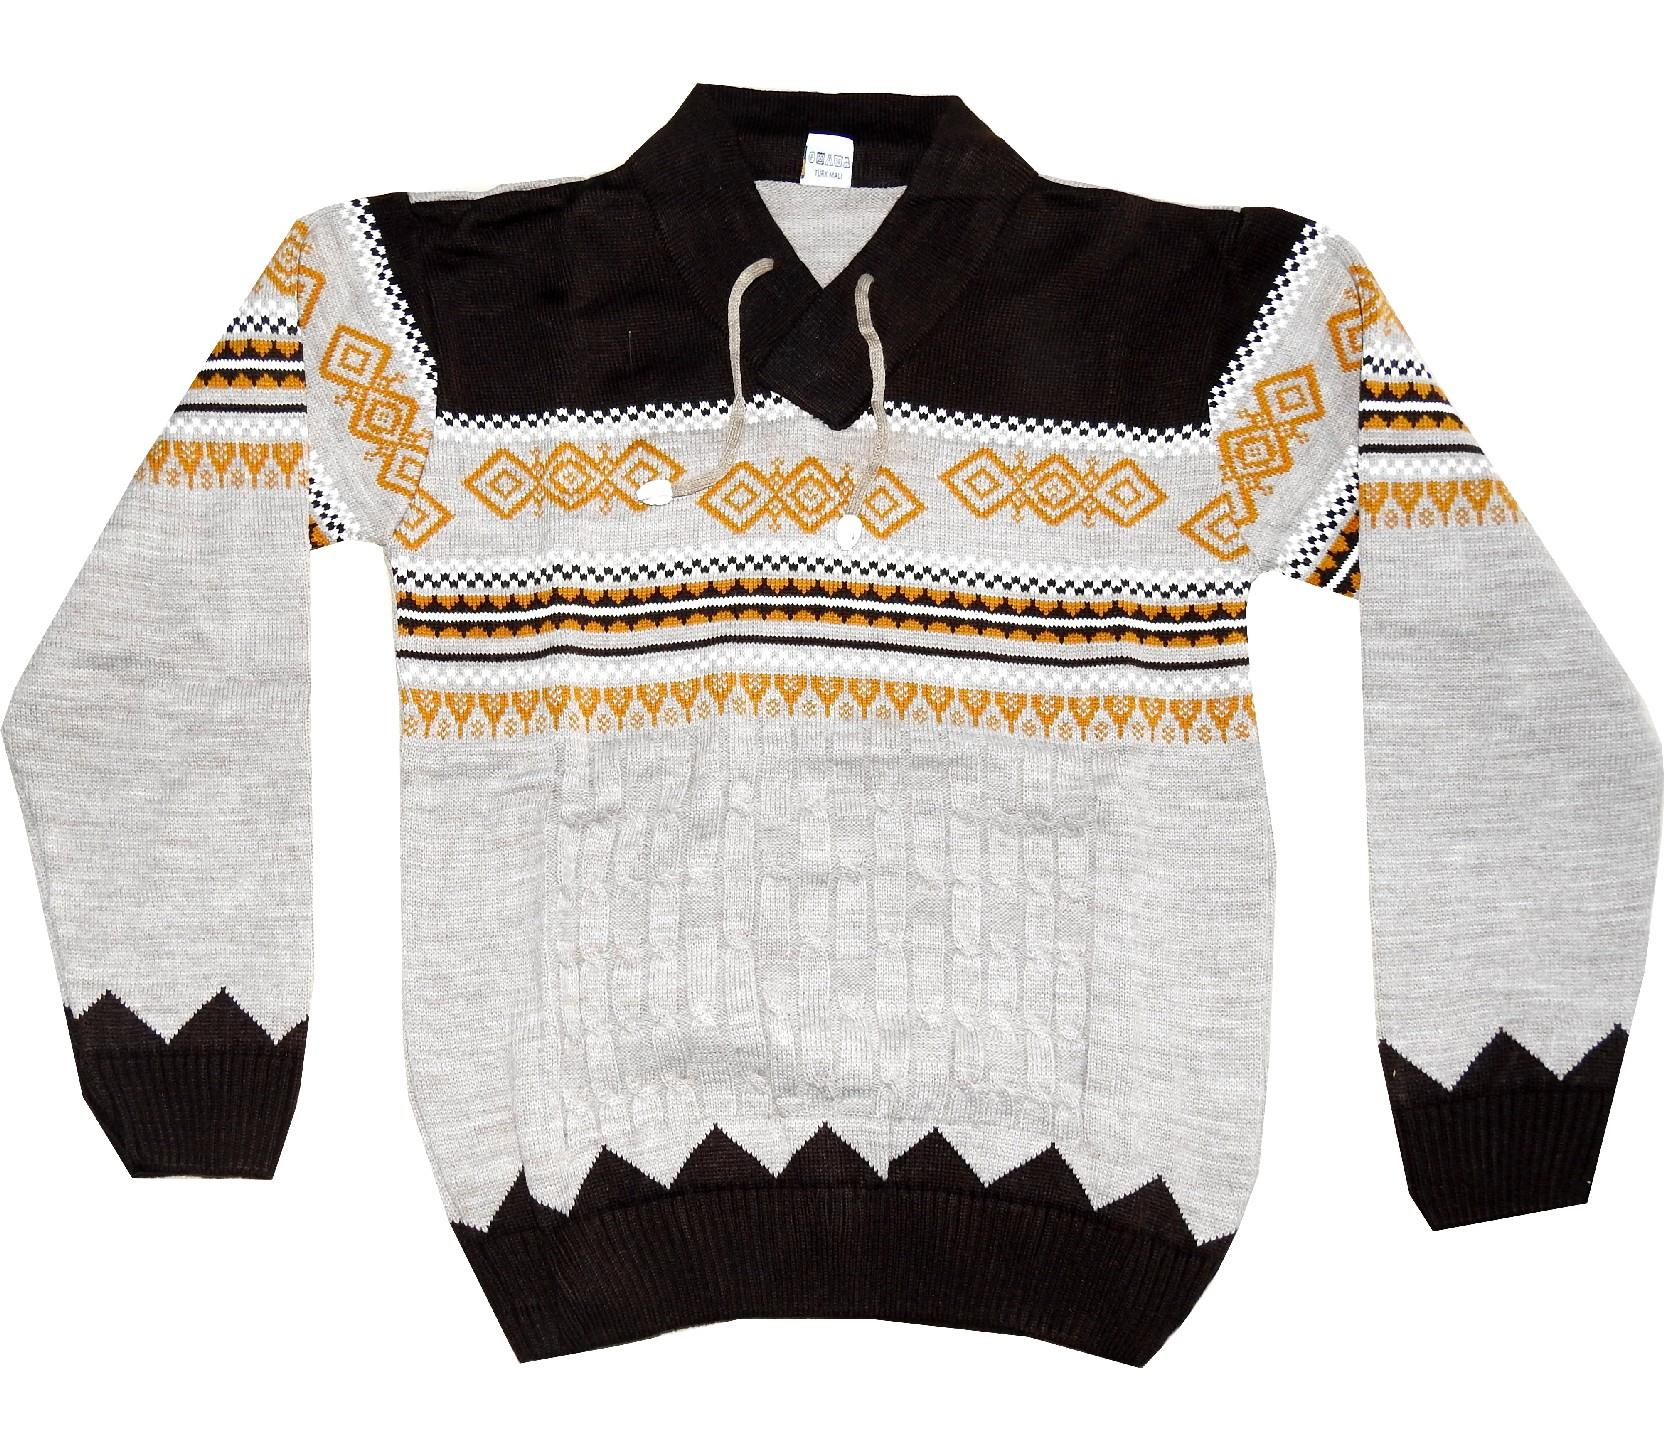 DIAMOND KNITTED DESIGNED SWEATER FOR BOY (10-12-14 AGE)